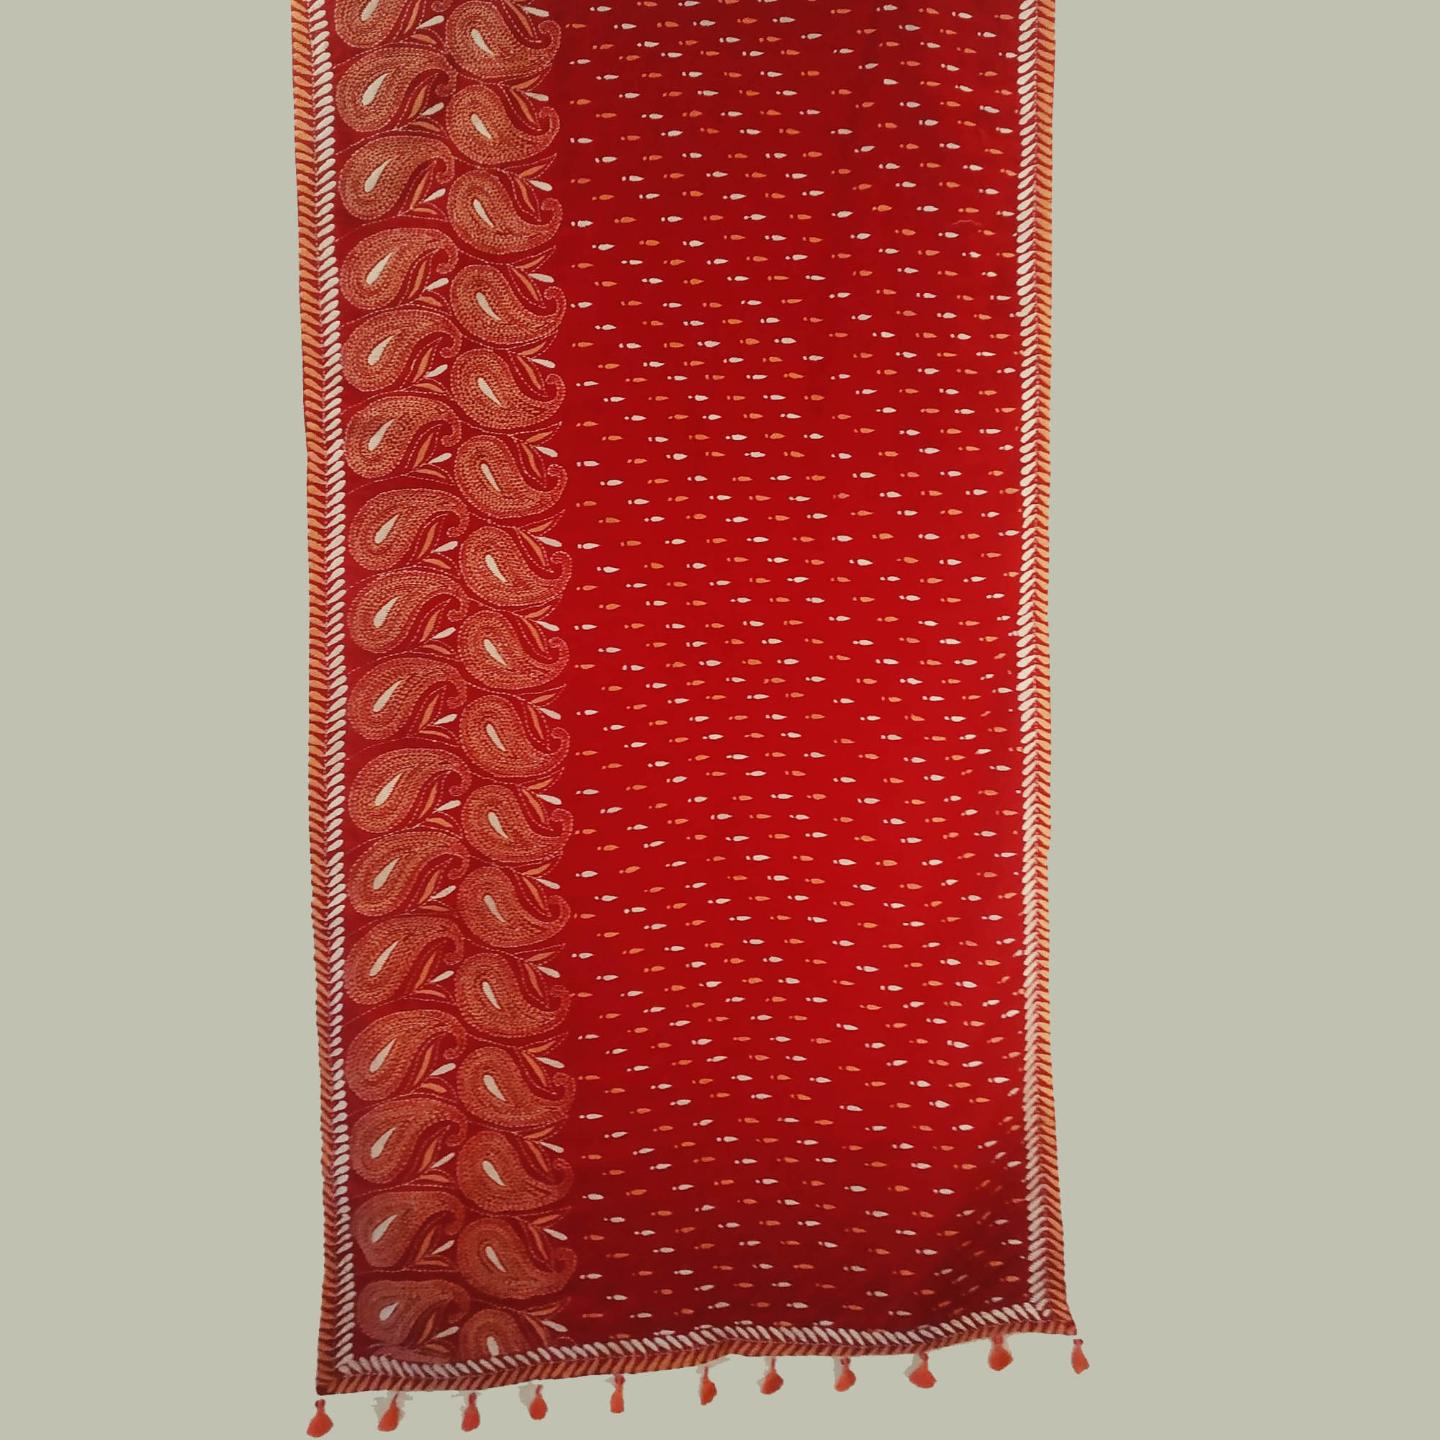 Red Cotton Hand Kantha Embroidered Dupatta